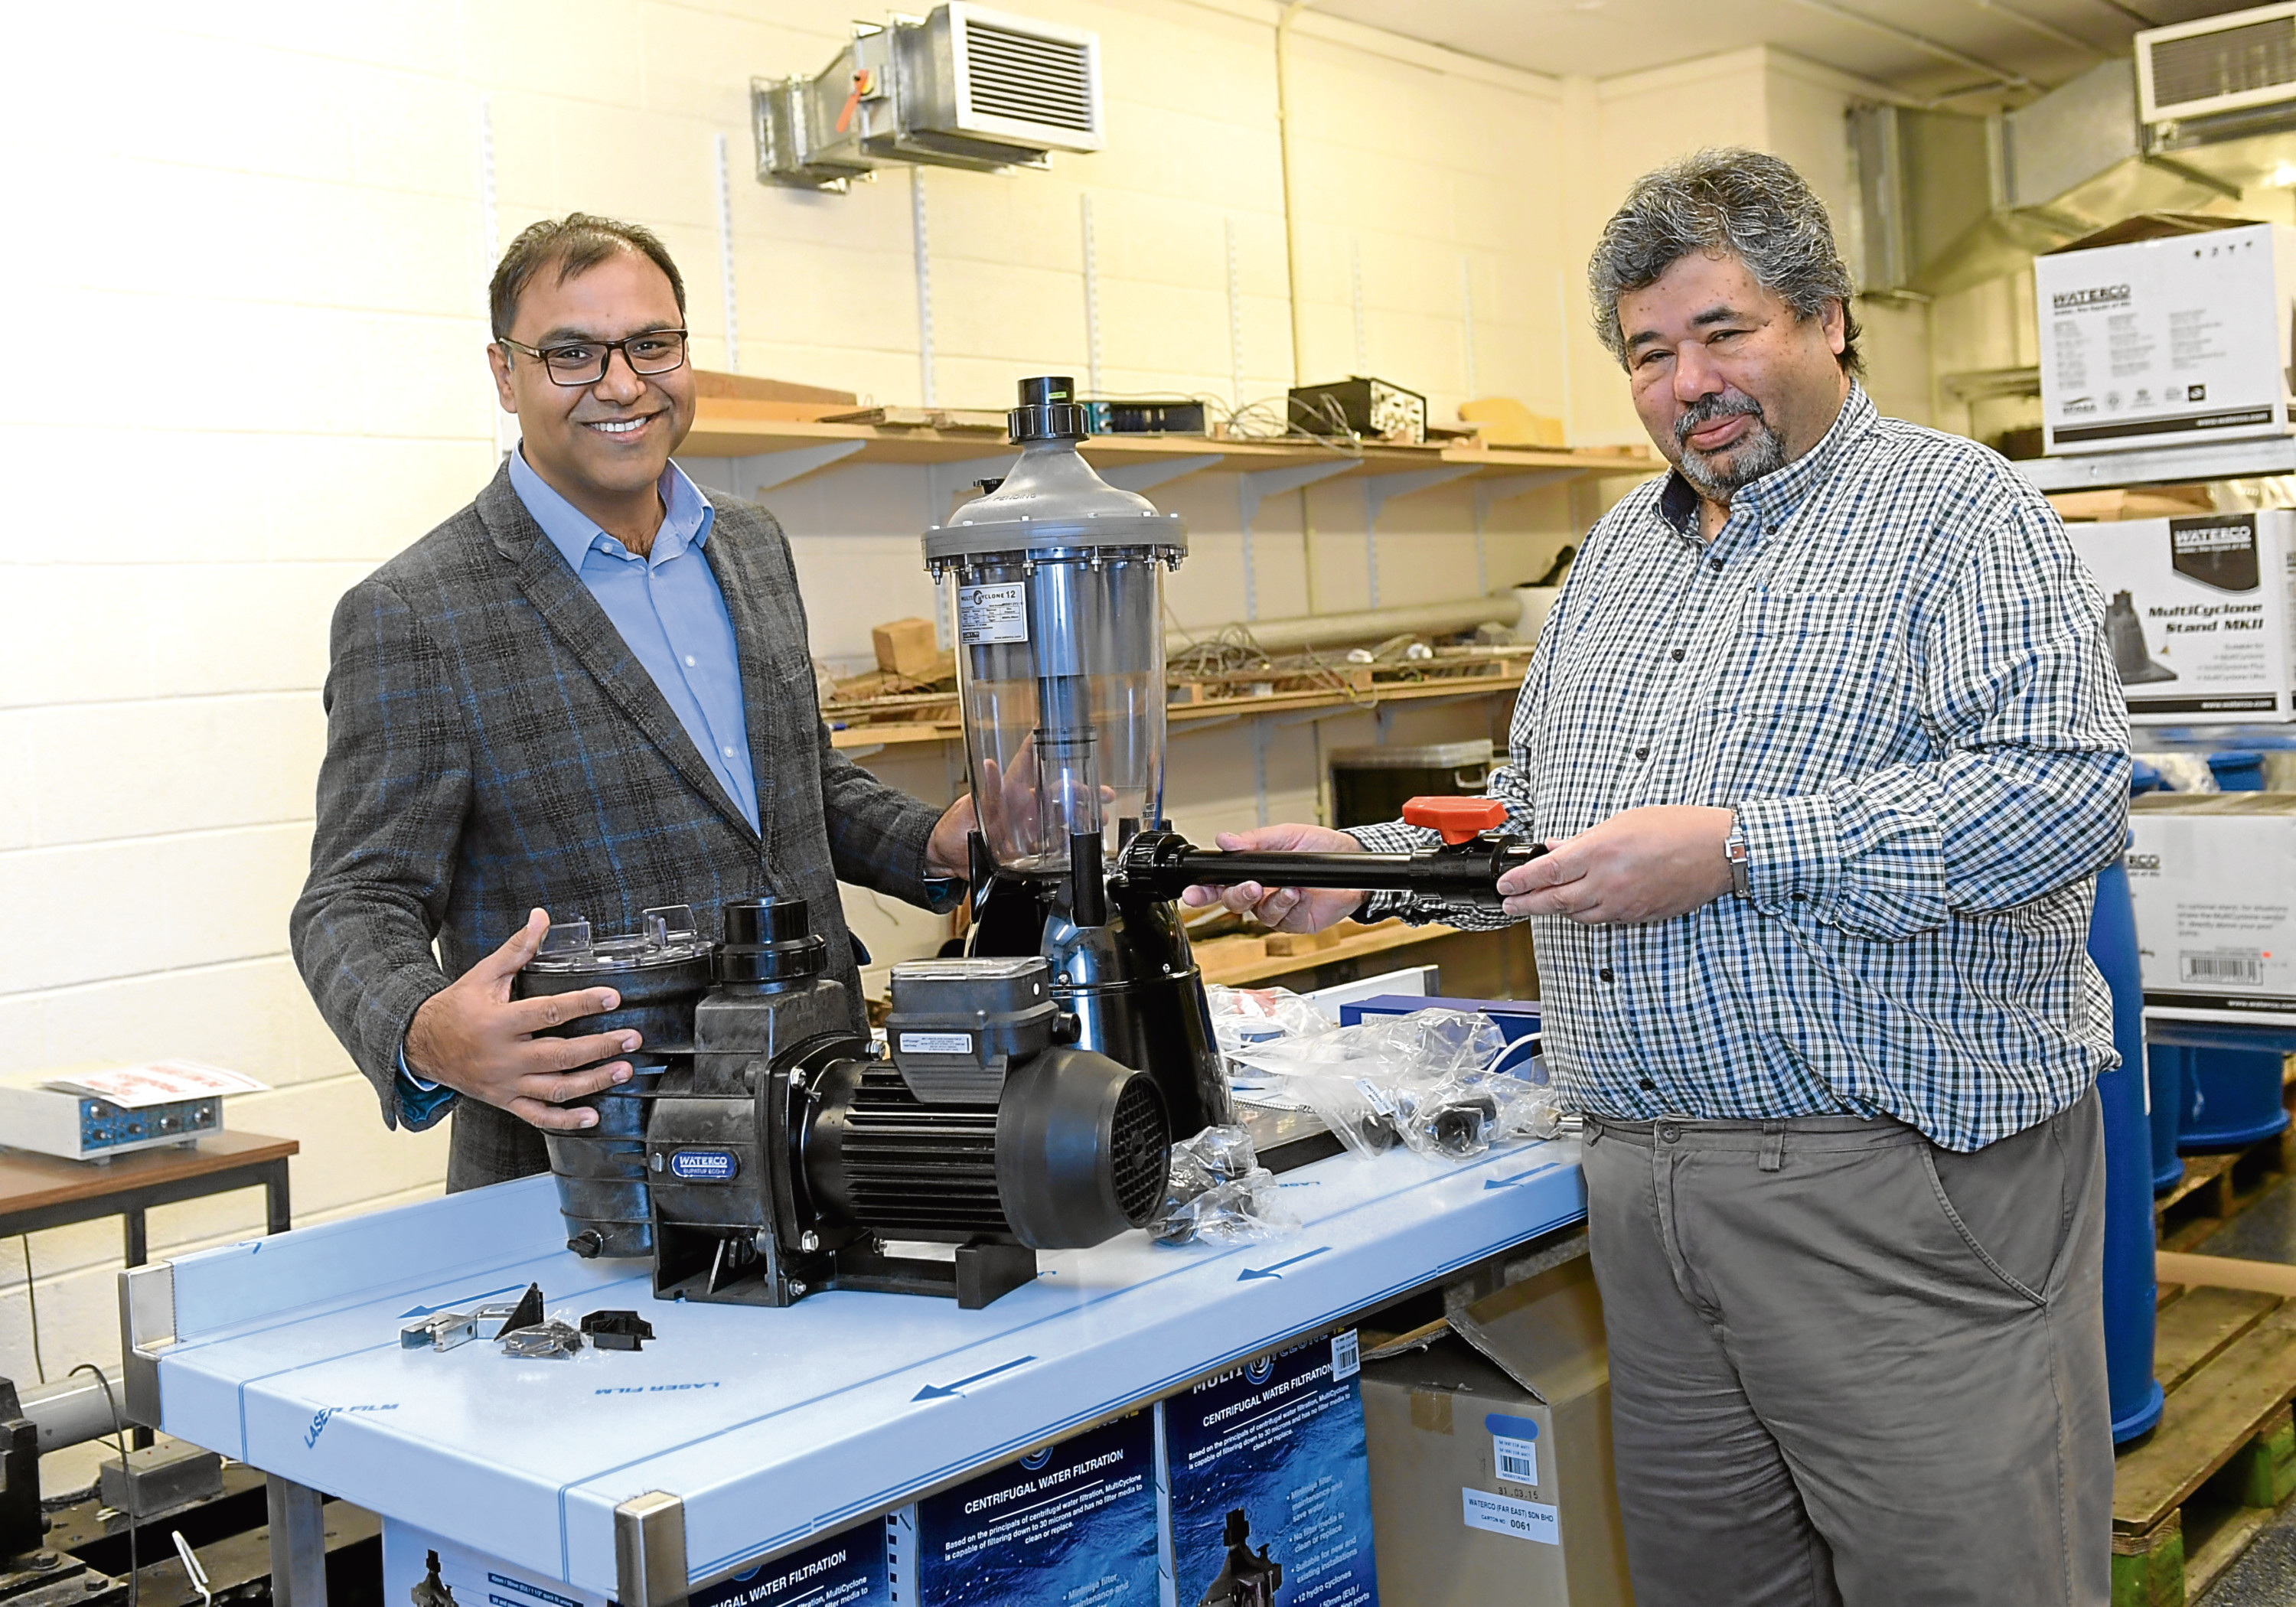 The machine has been designed by a team at the University of Aberdeen.